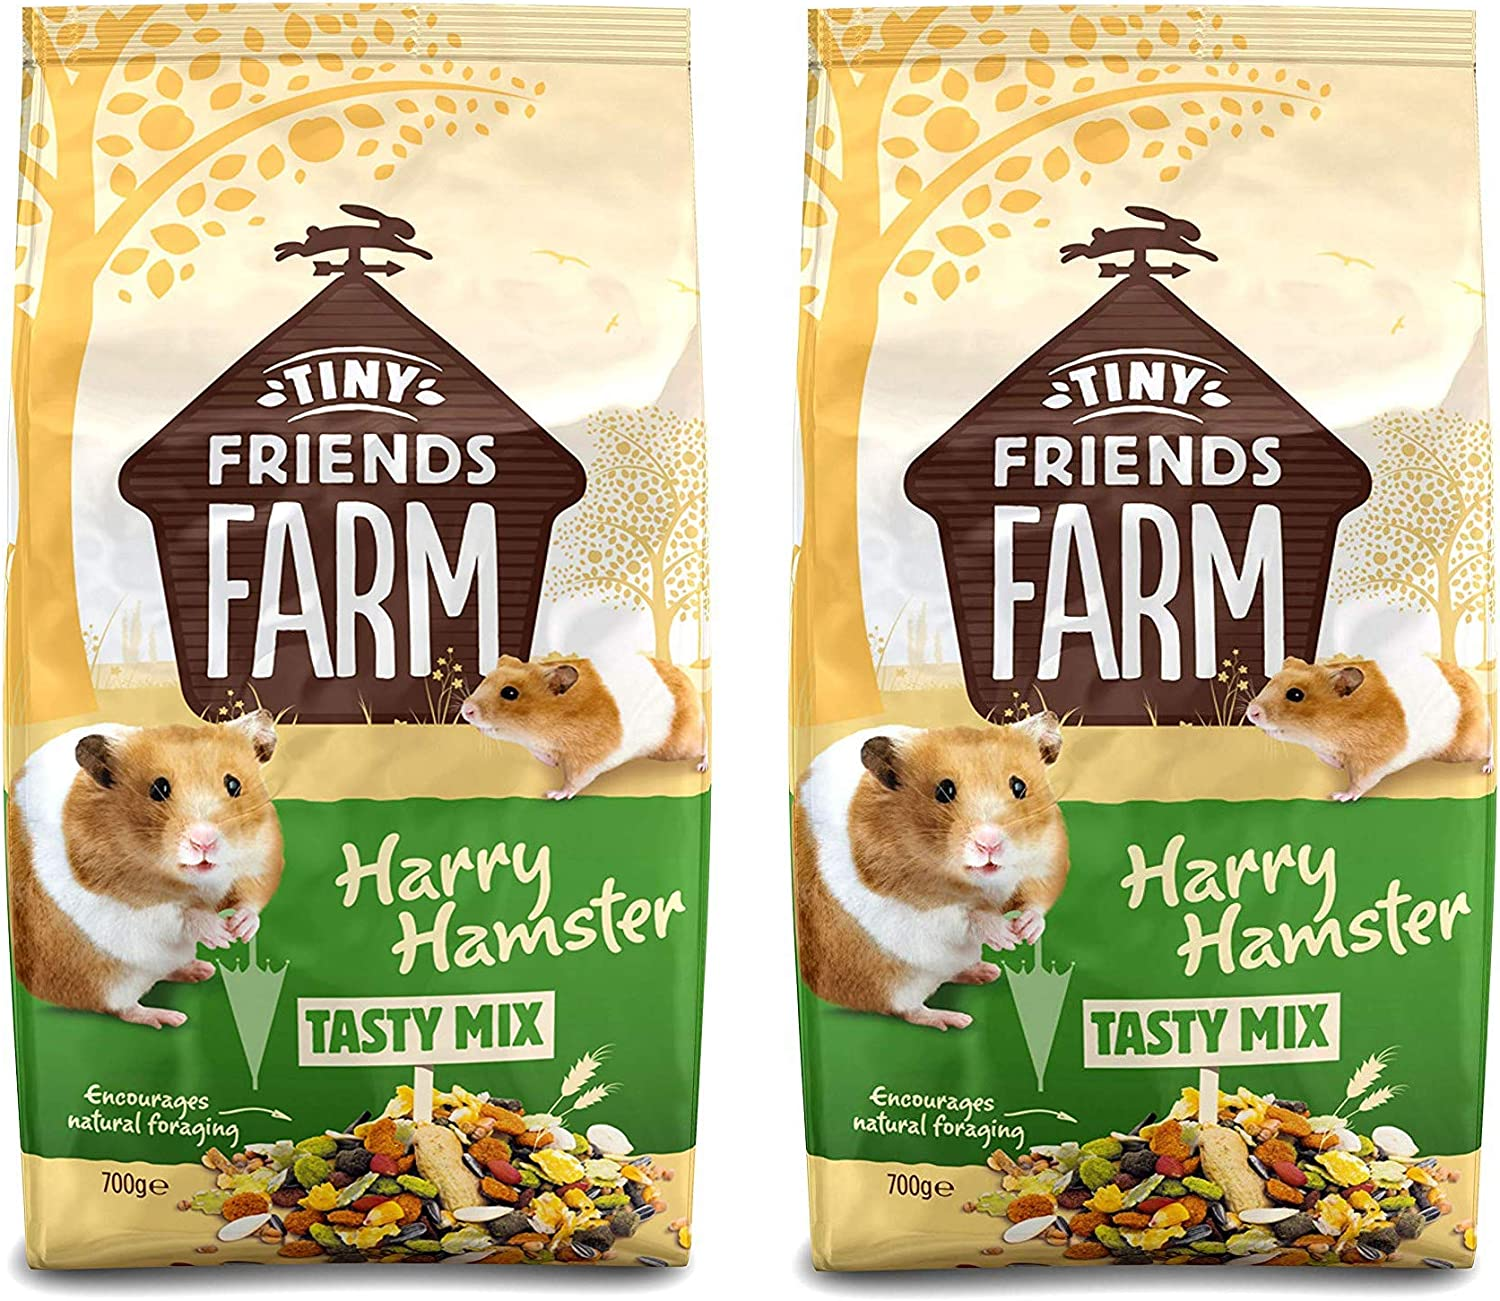 Supreme (2 Pack) Harry Hamster 700g, Hamster Food